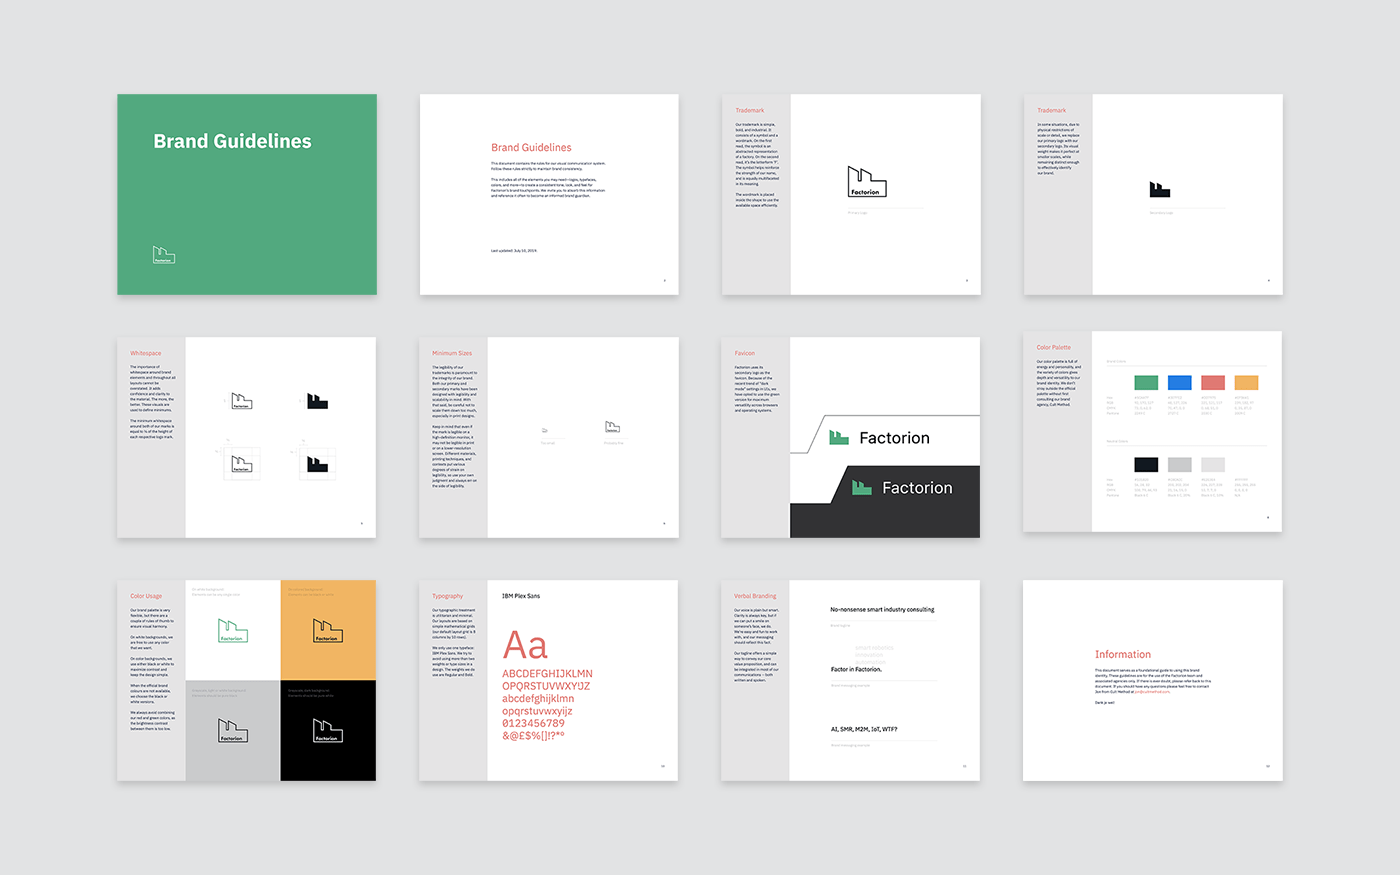 Factorion brand guidelines